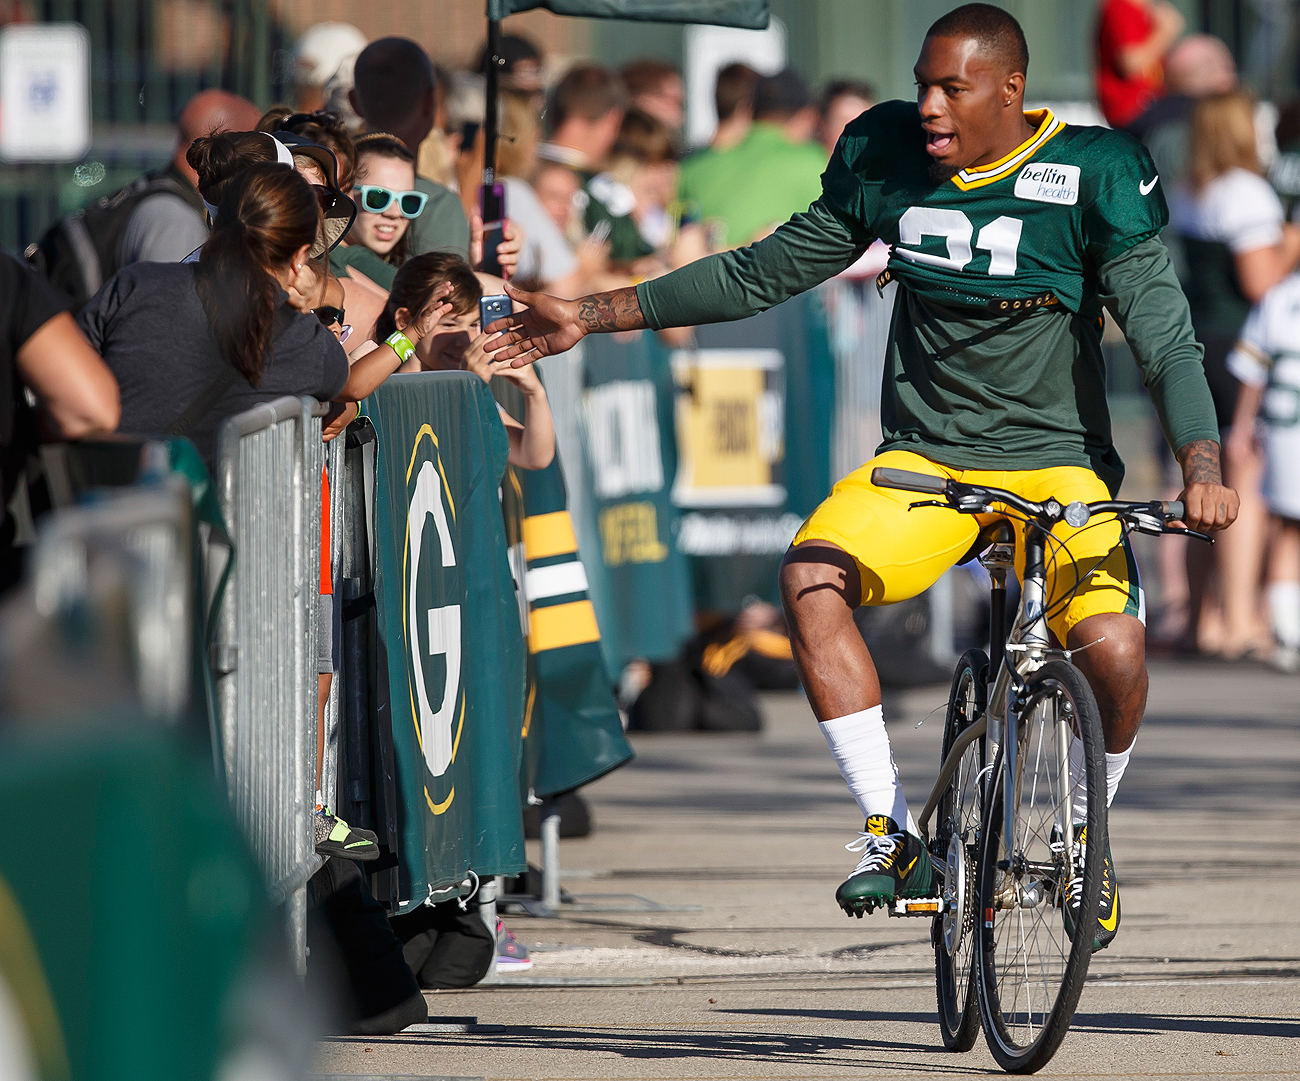 Players riding bikes is an annual tradition at Packers camp in Green Bay.